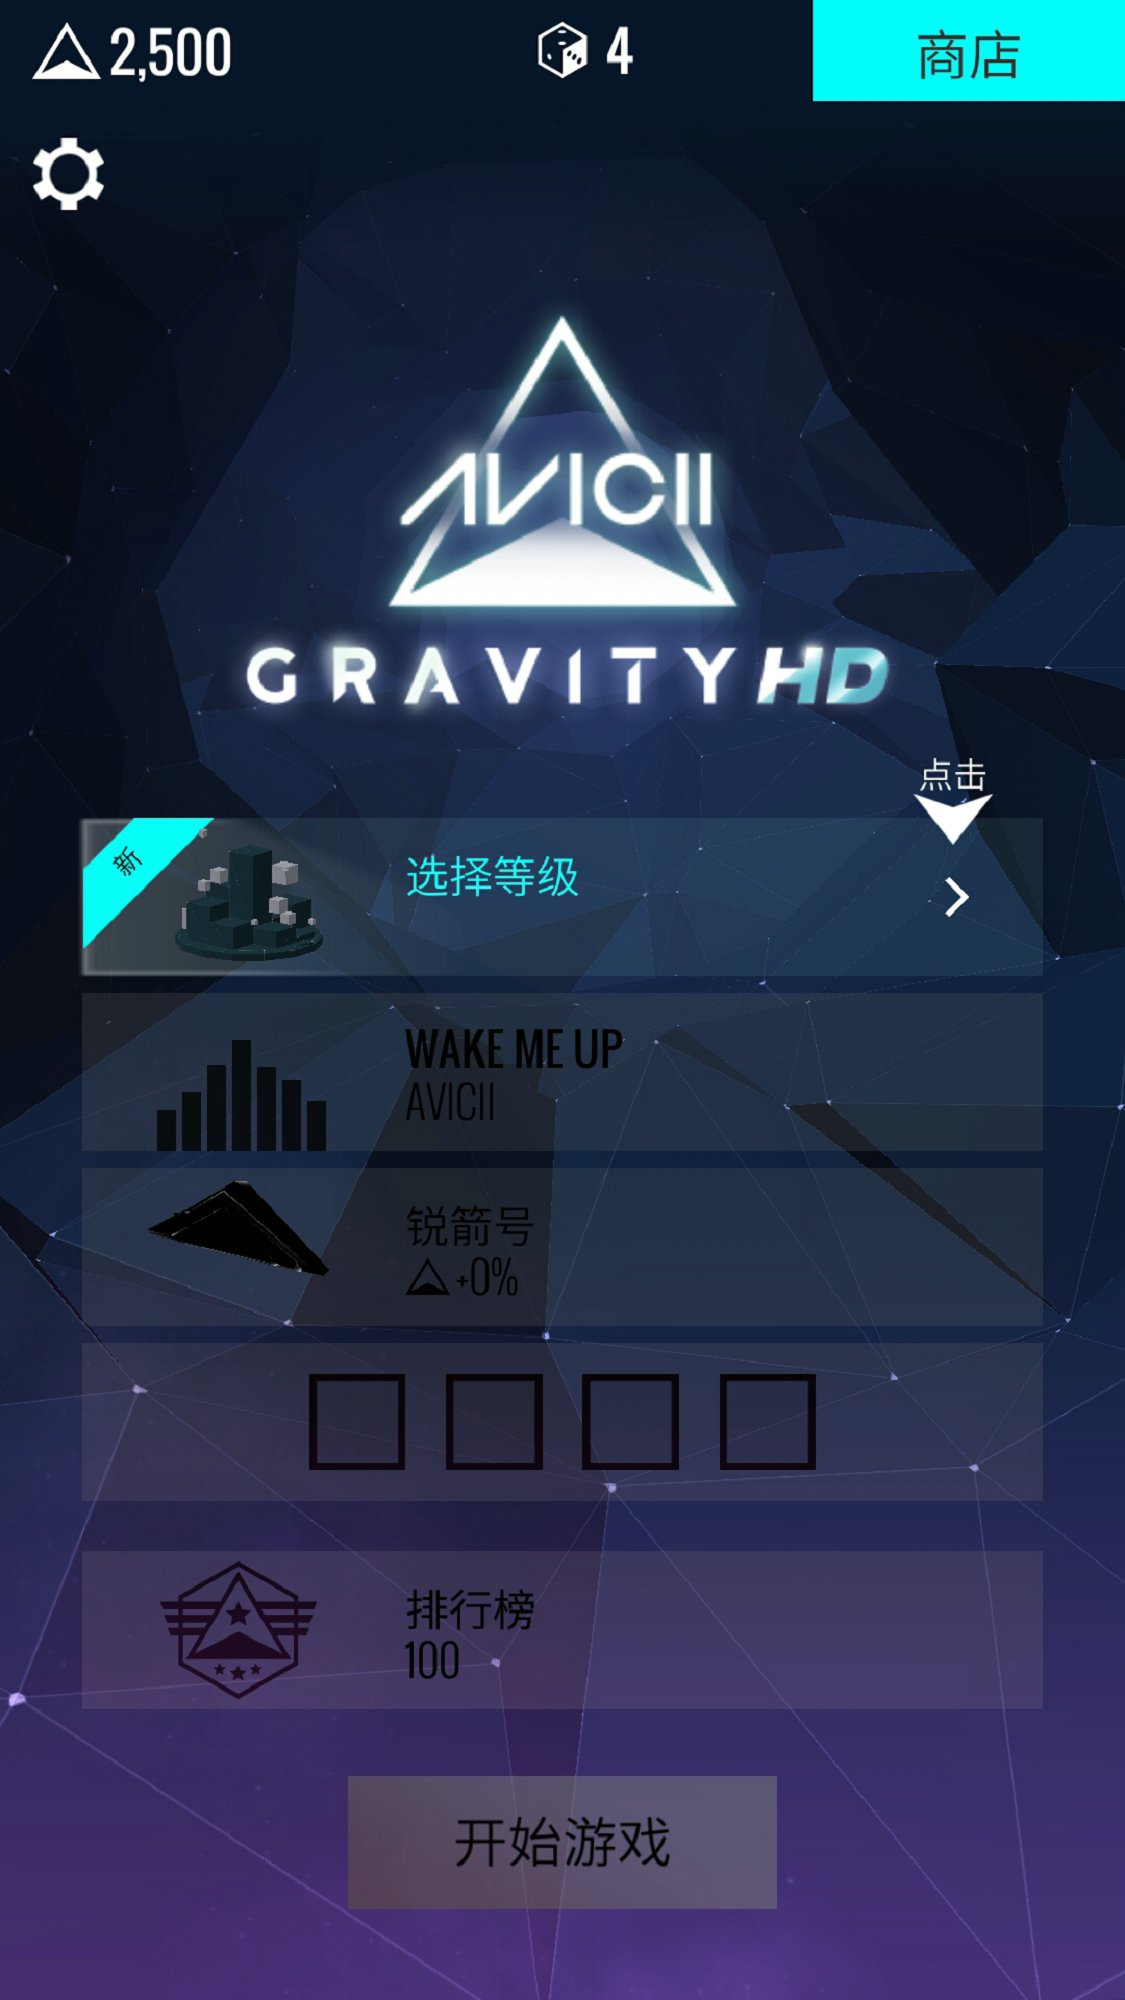 Avicii  Gravity HD v1.4.4截图